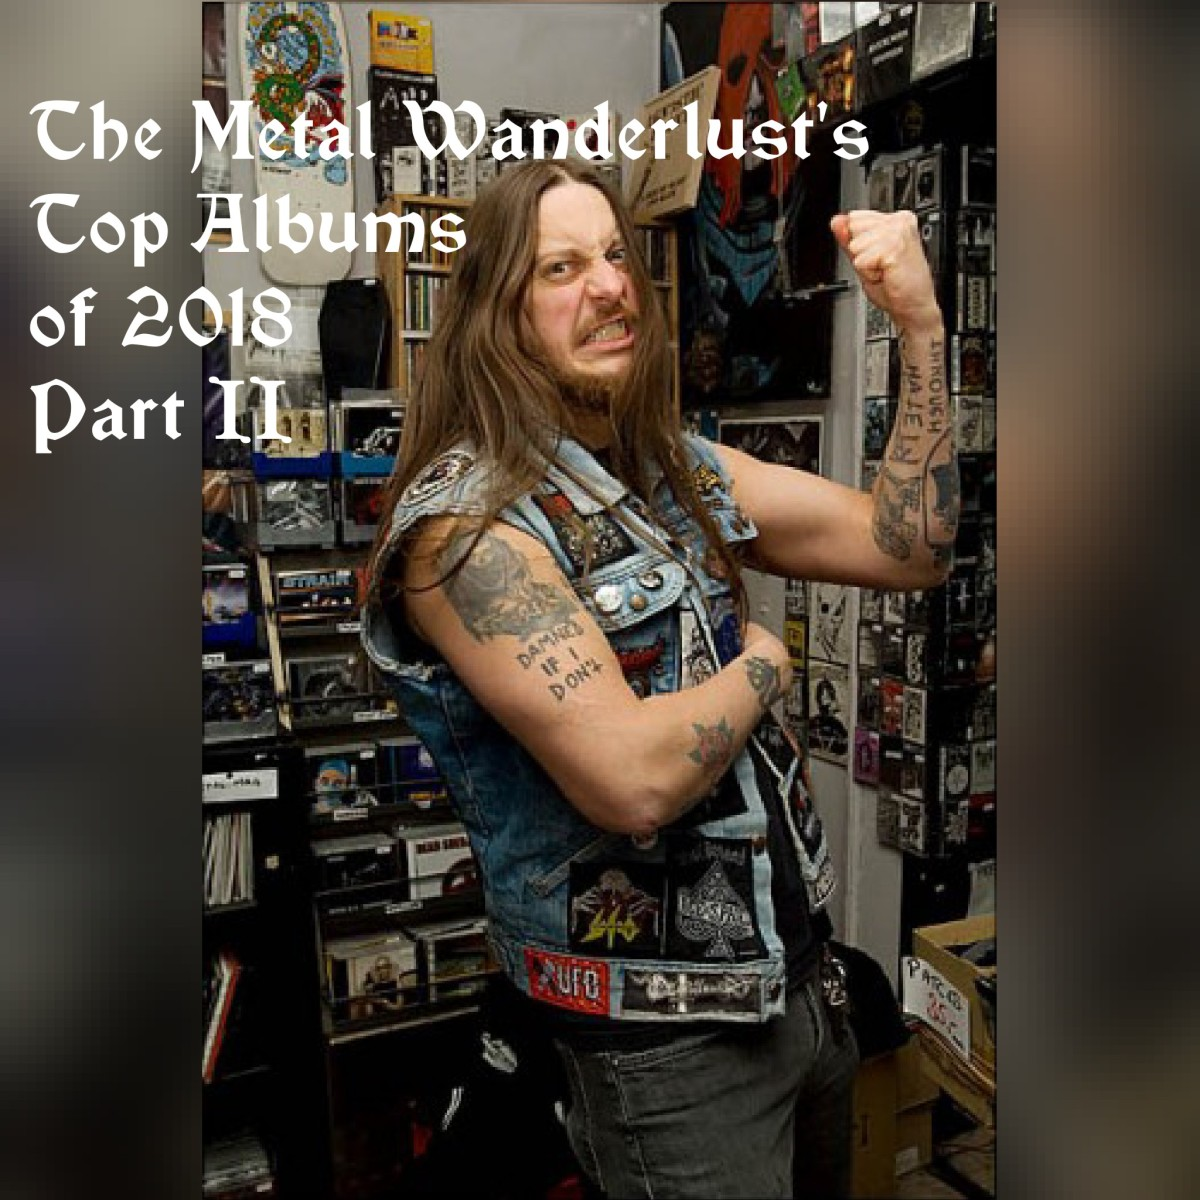 The Metal Wanderlust's Top Albums of 2018- Part II